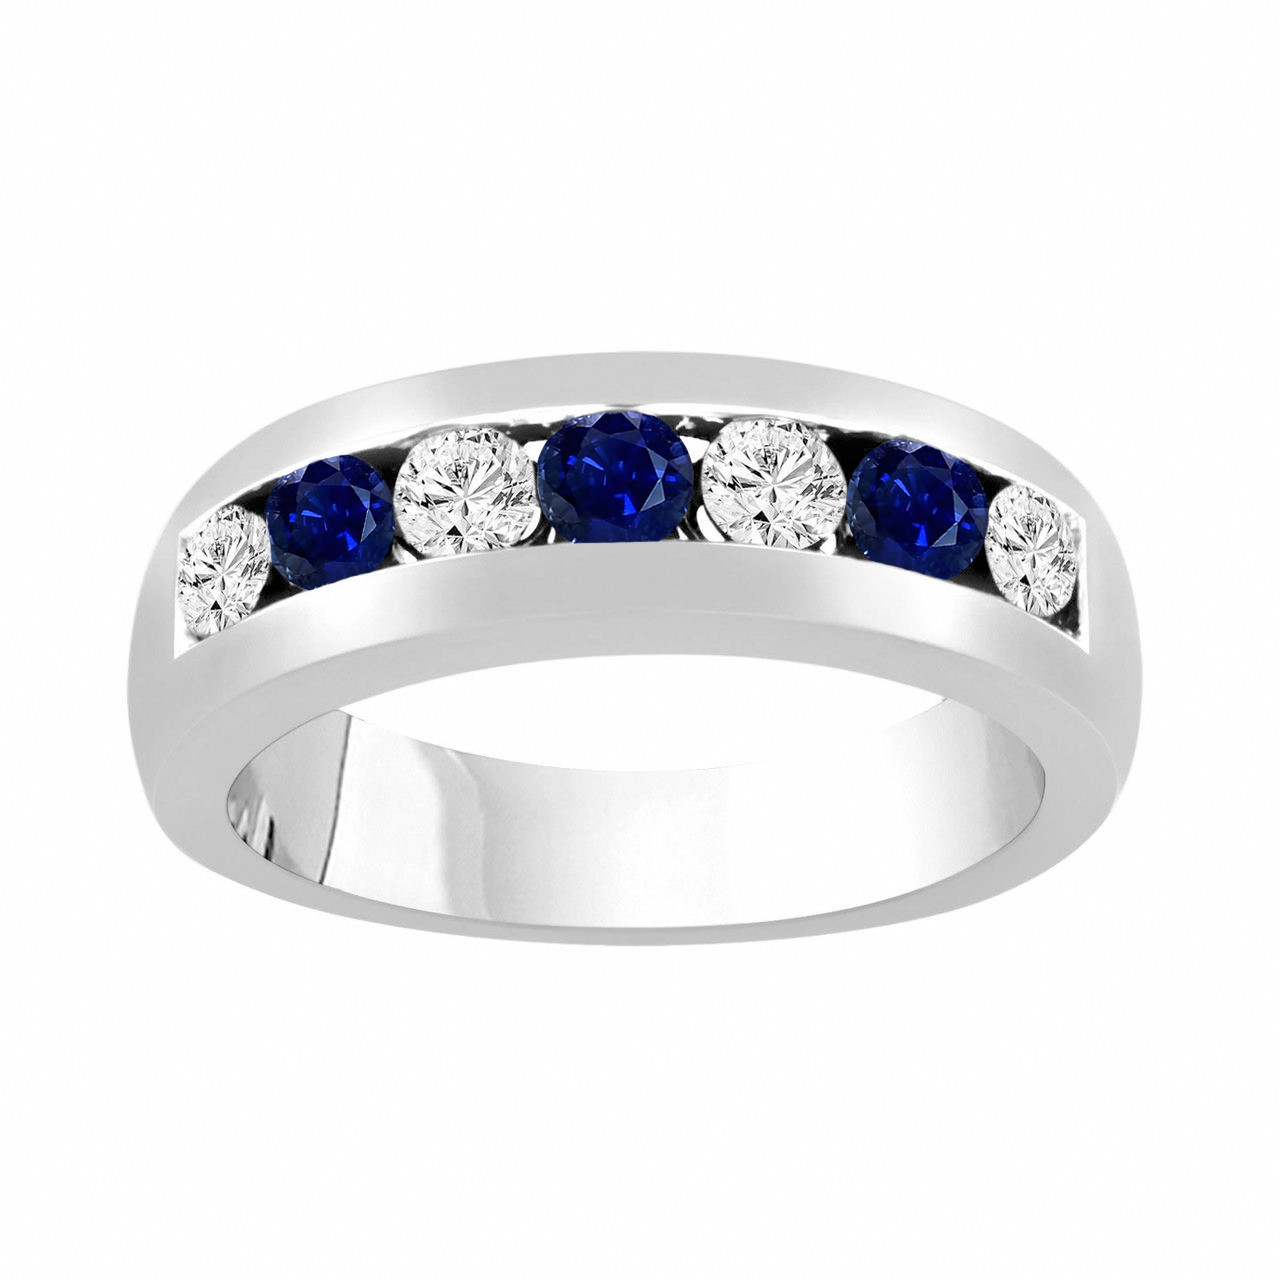 It is just a photo of Alternating Sapphire and Diamonds Wedding Band, Blue Sapphire Mens Wedding Ring, Unisex Anniversary Ring, 43.43 Carat 43K White Gold 43 mm